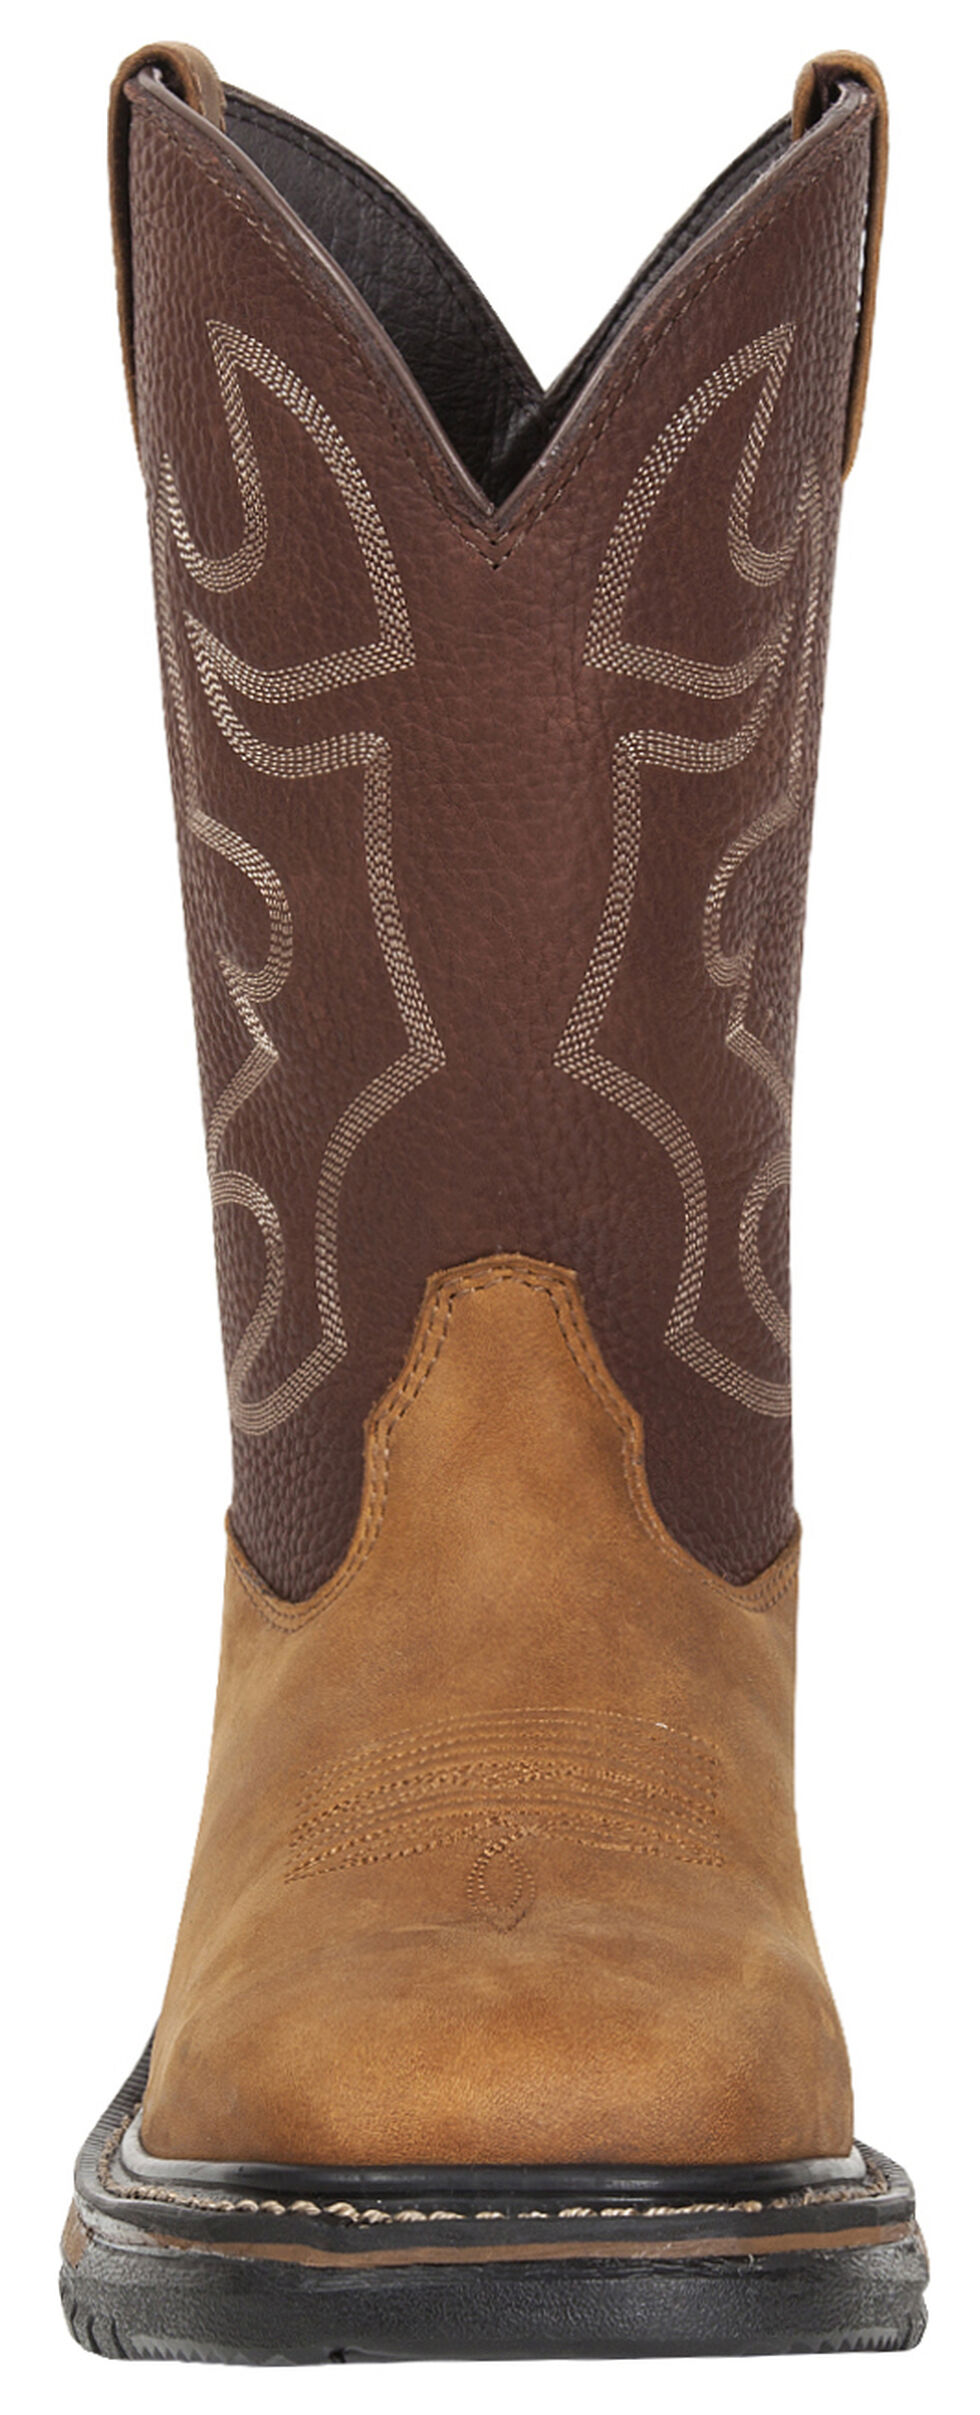 Rocky Men's Original Ride Steel Toe Western Boots, Brown, hi-res